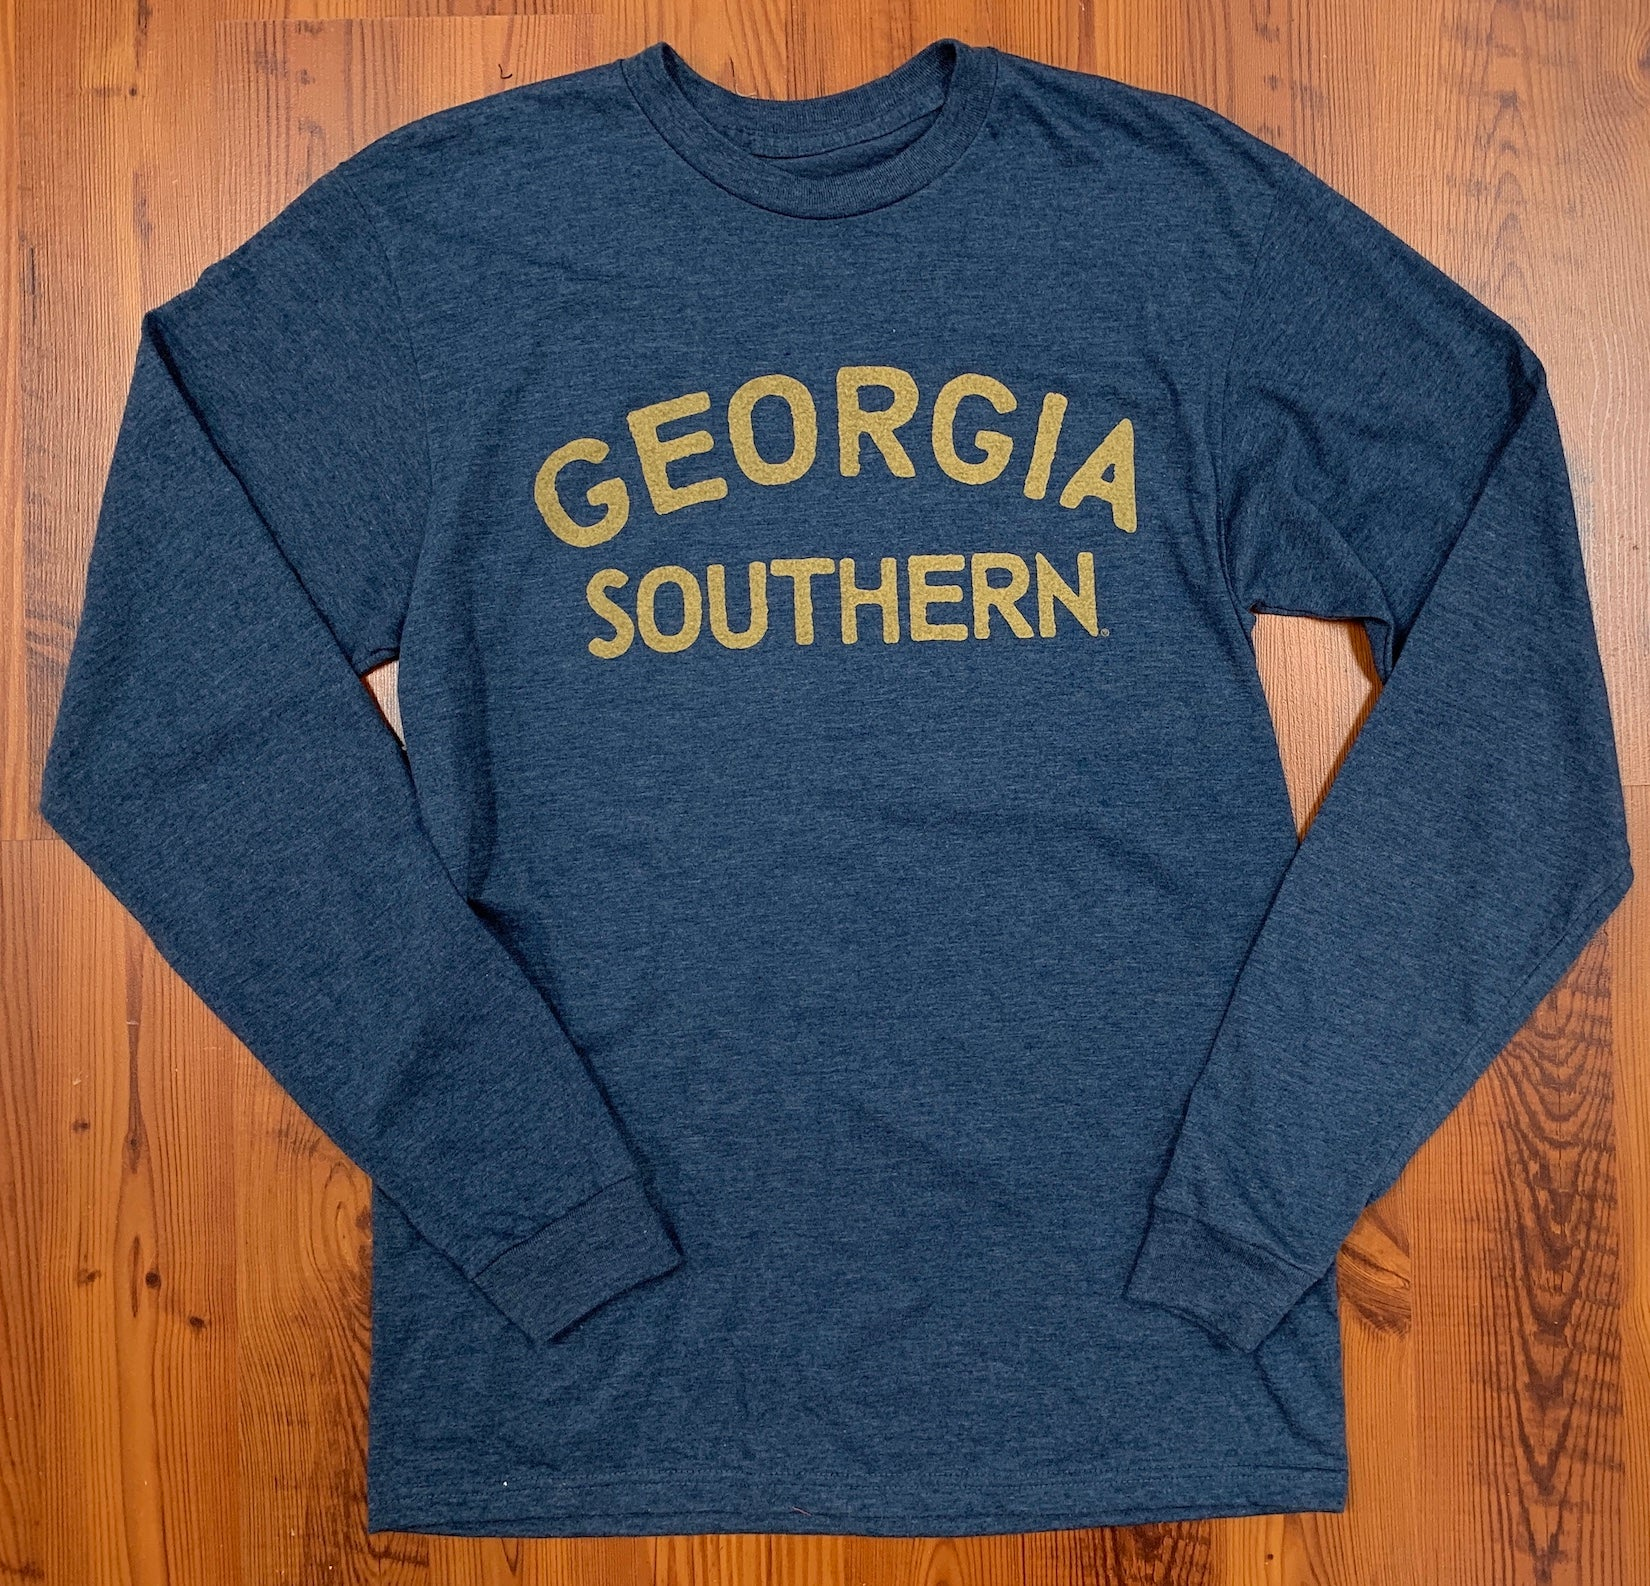 The Vintage Supersoft Long Sleeve Tee - Heather Denim